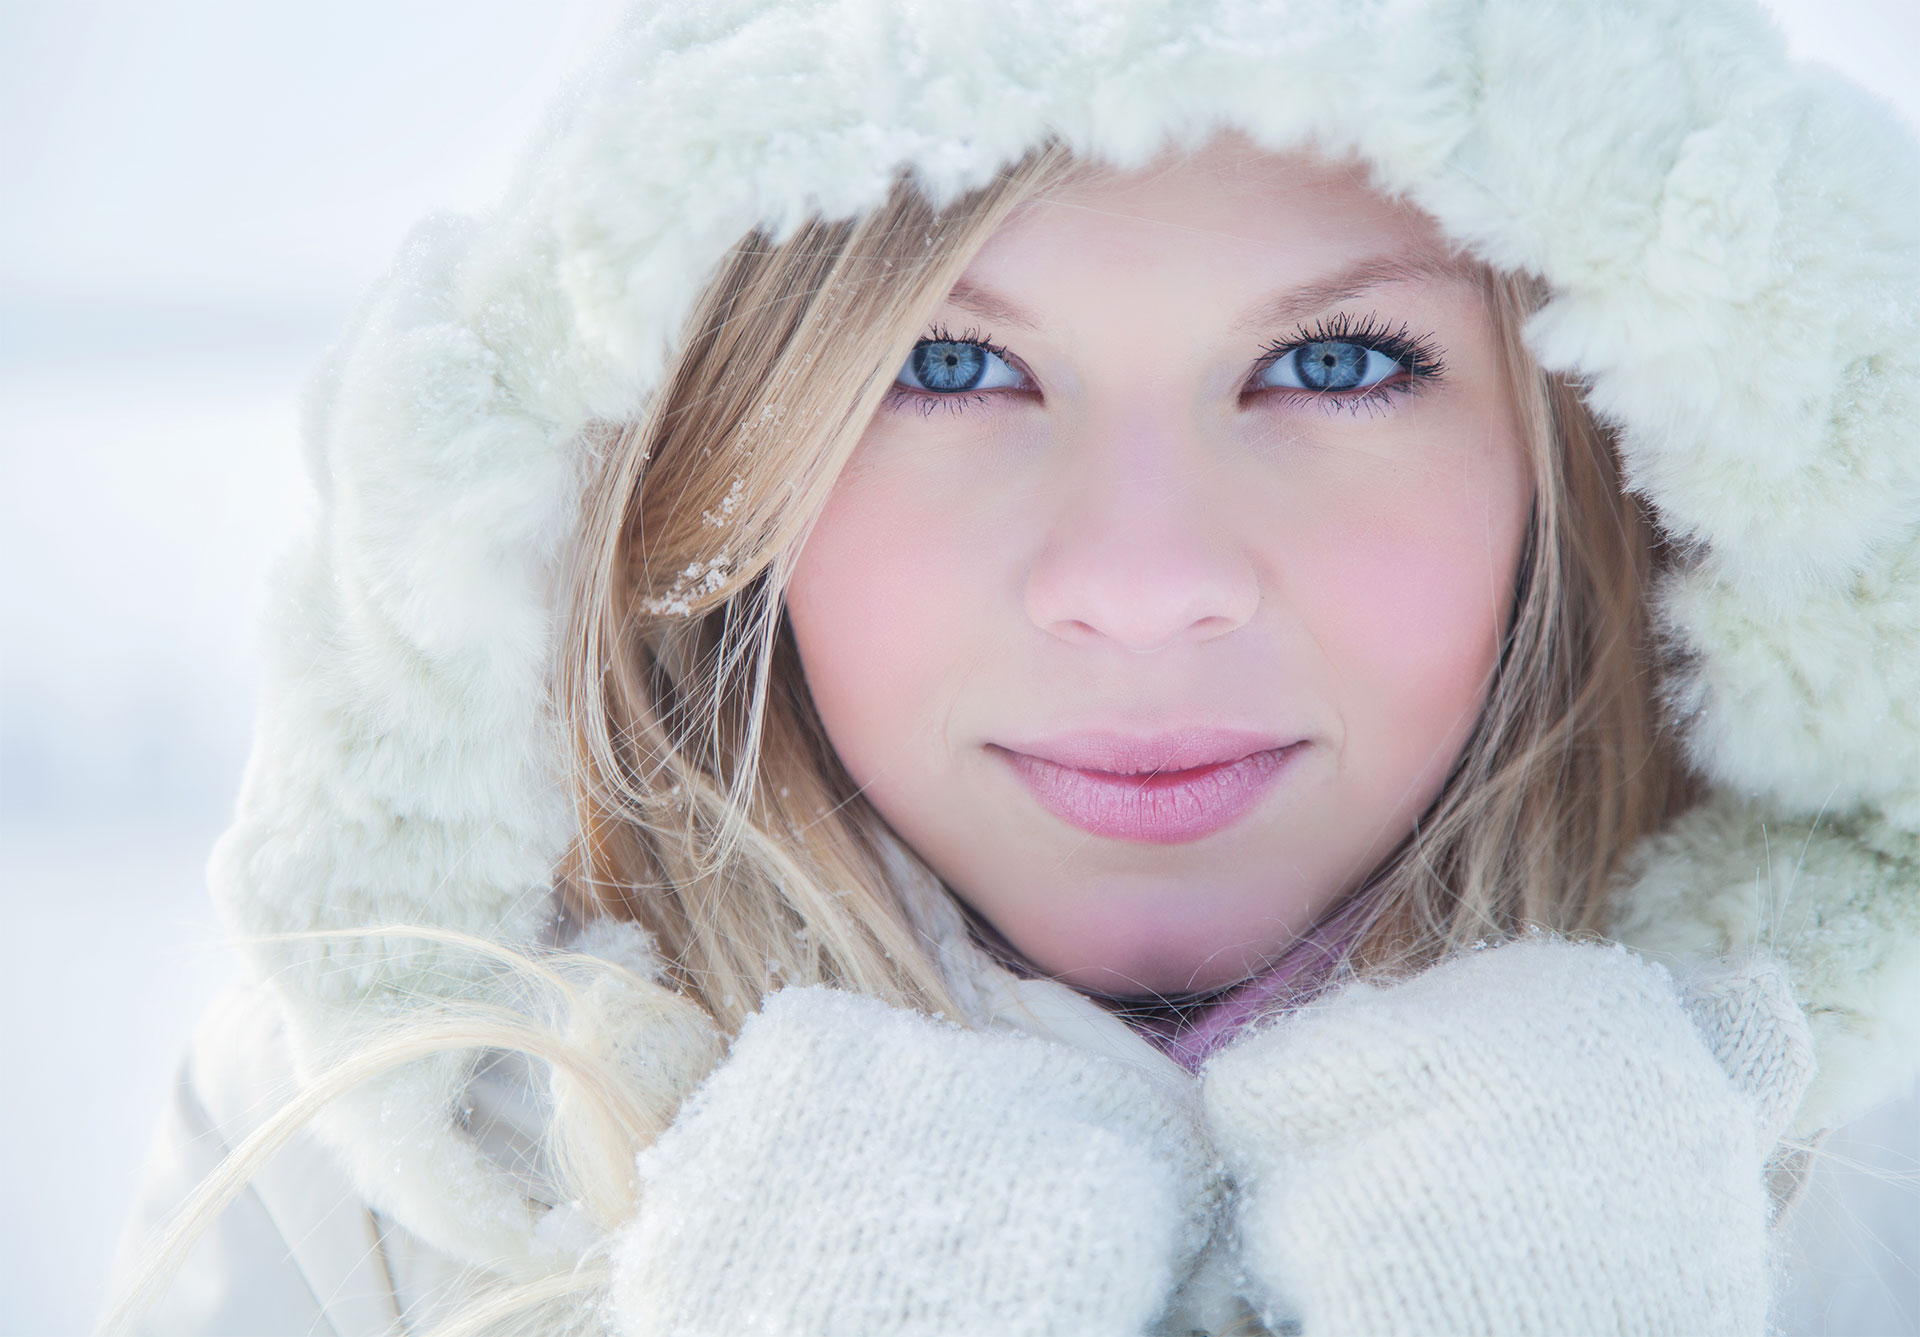 a model dressed for winter with lips protected from harsh weather